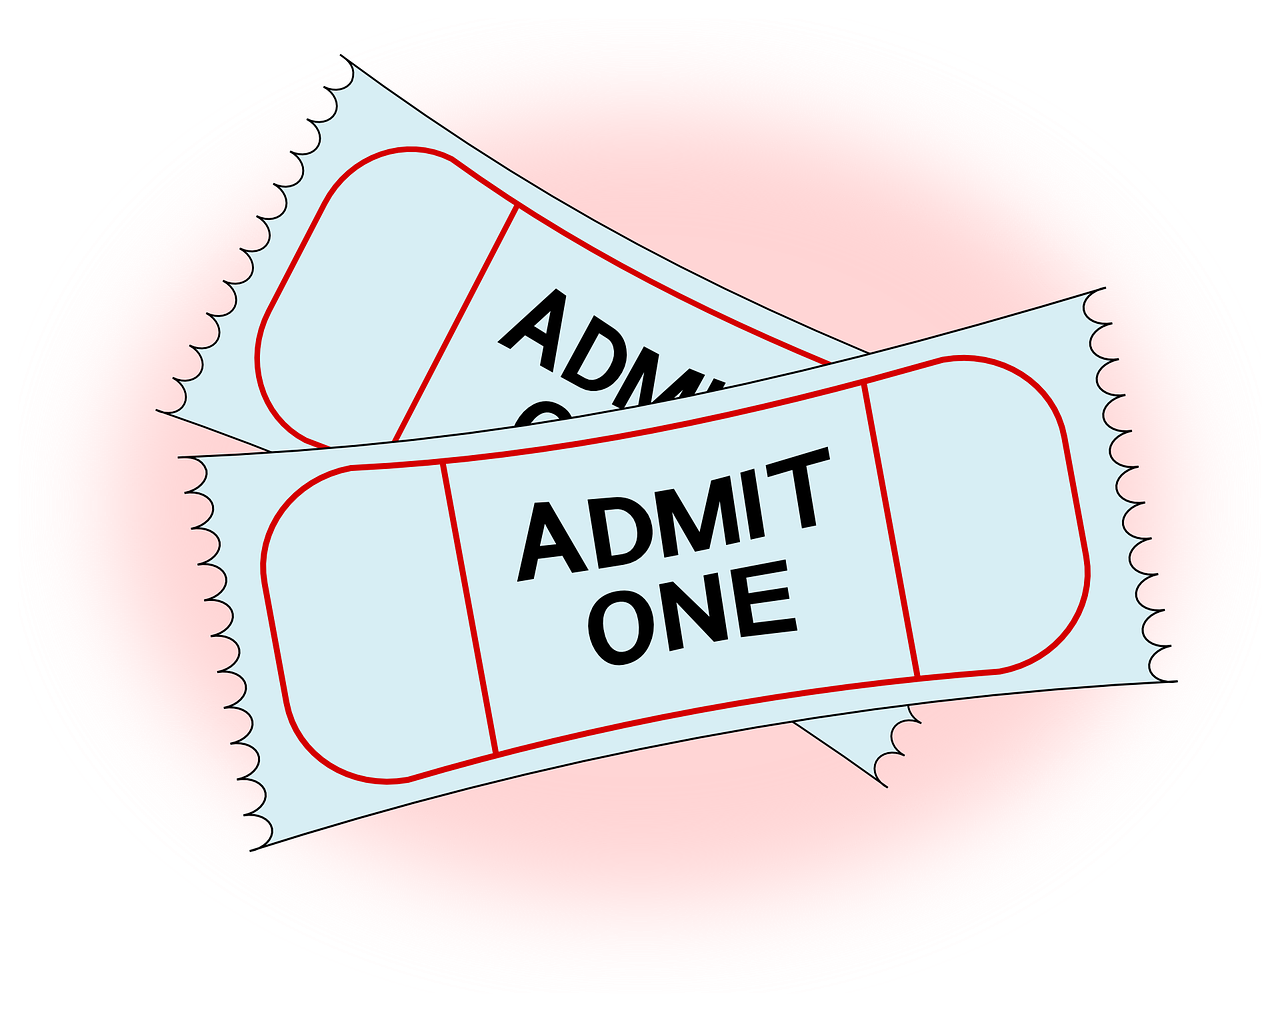 tickets,admit,admission,coupon,event,festival,stub,voucher,theatre,theater,permission,free vector graphics,free pictures, free photos, free images, royalty free, free illustrations, public domain